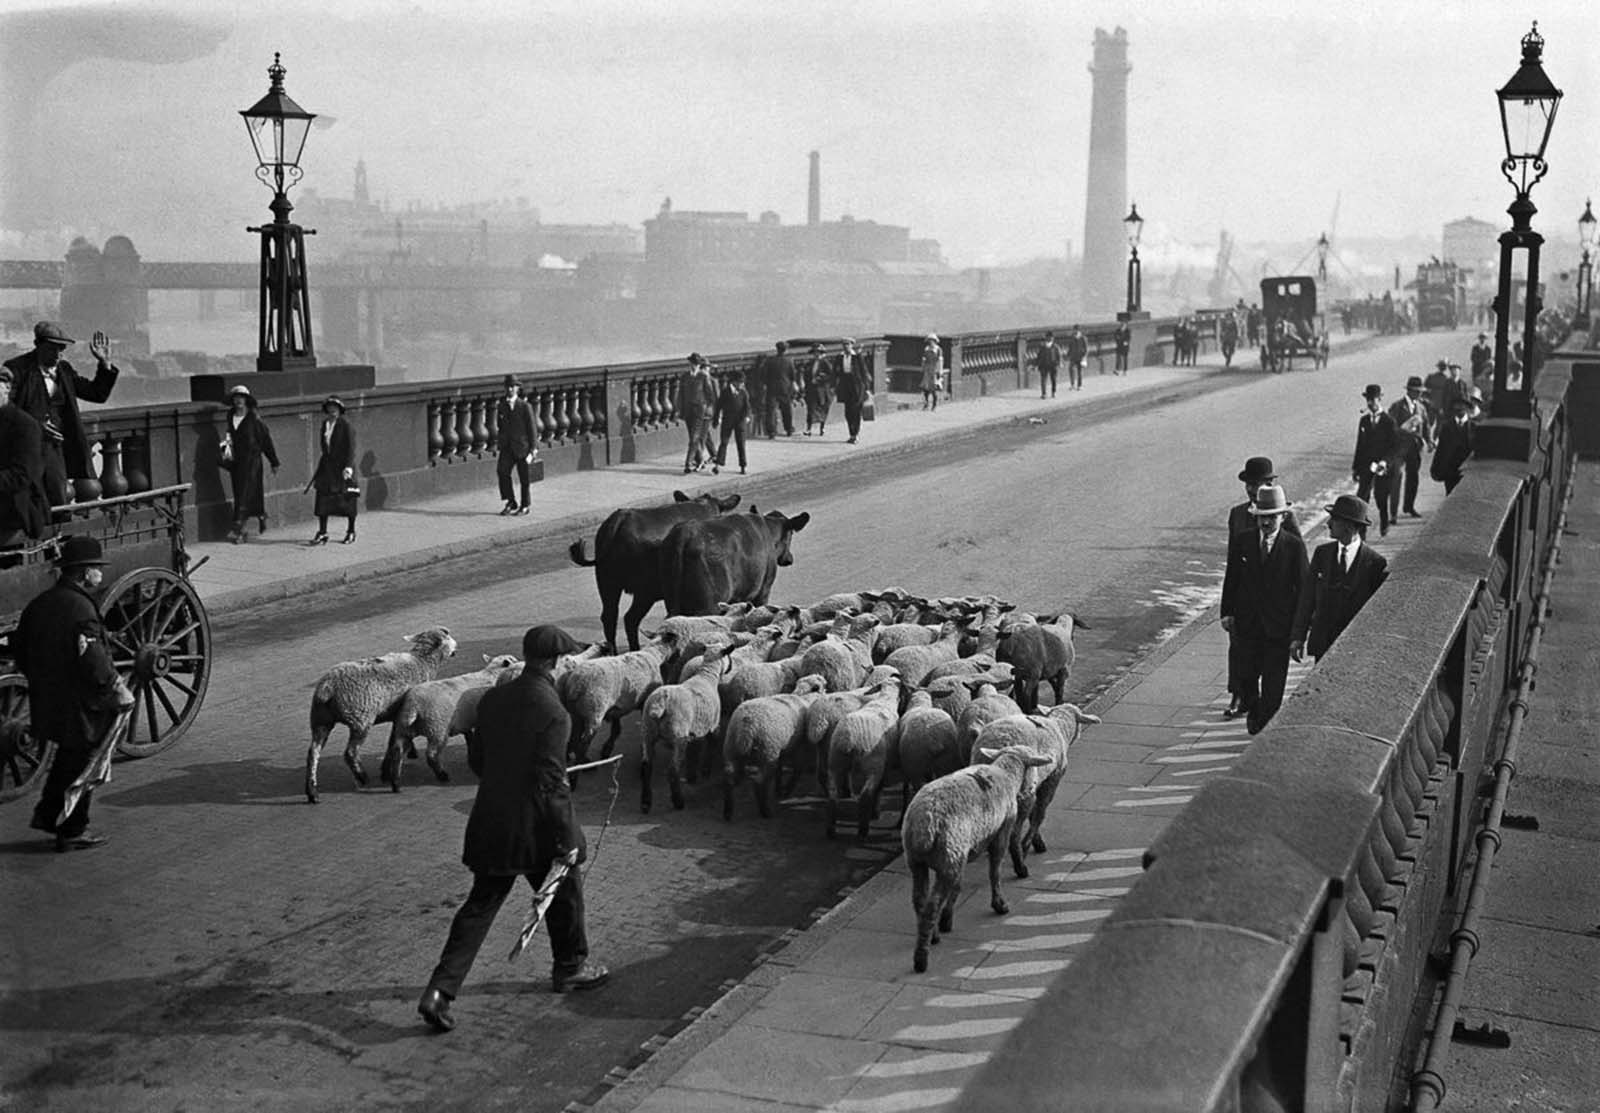 Crossing the Waterloo Bridge. 1924.